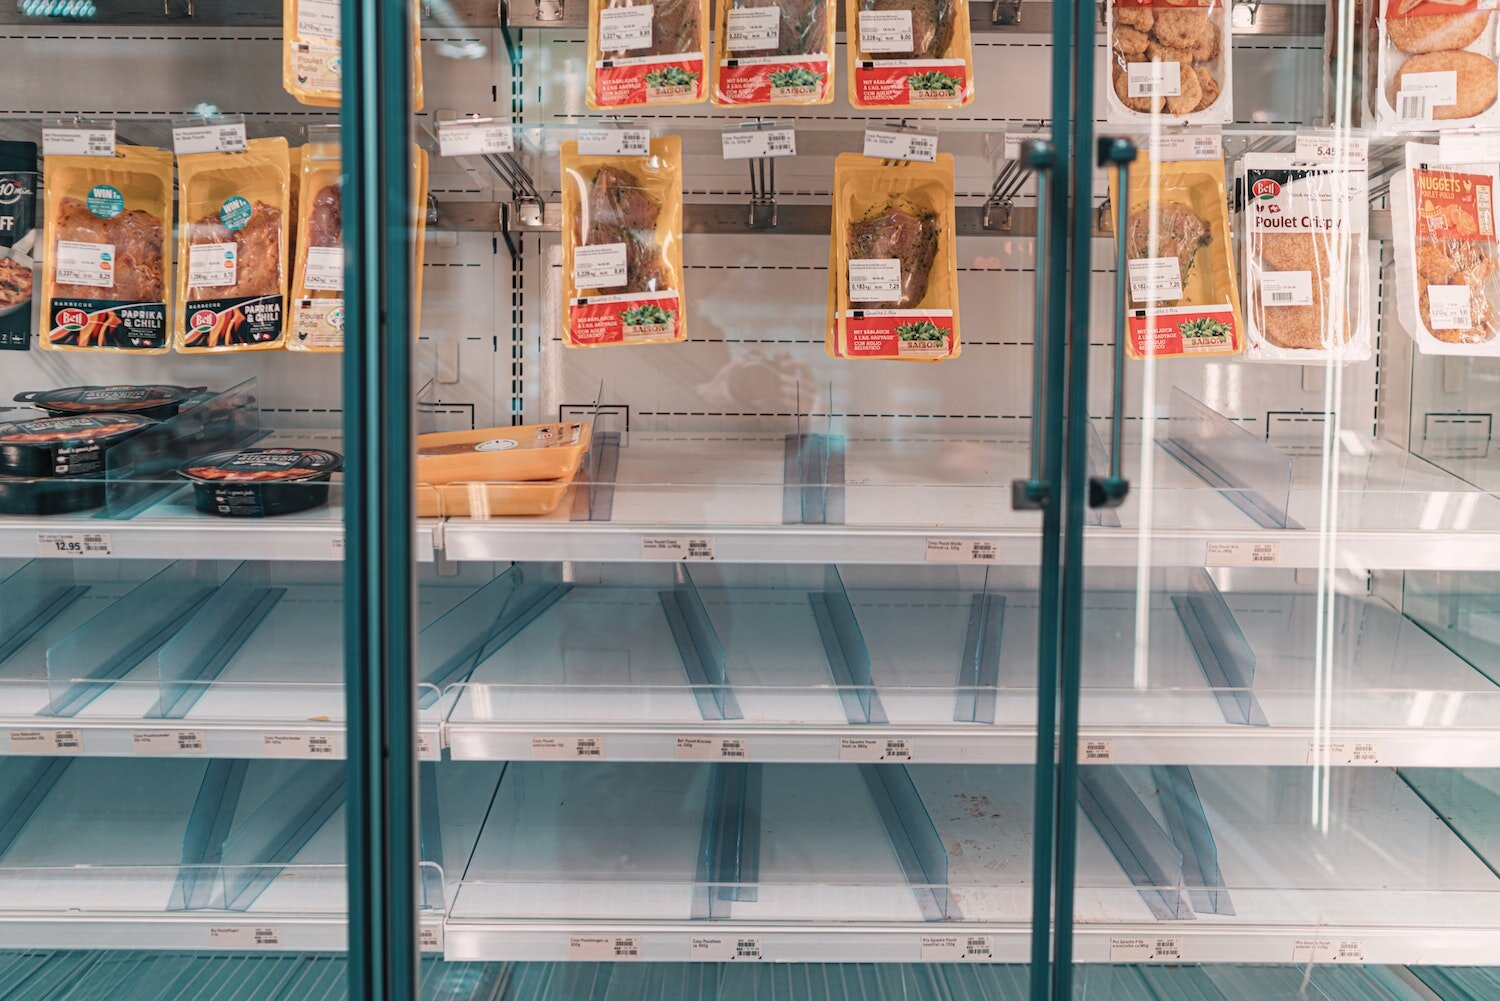 Empty shelves at grocery stores have prompted many in Indiana to start rethinking the state's food supply chain.